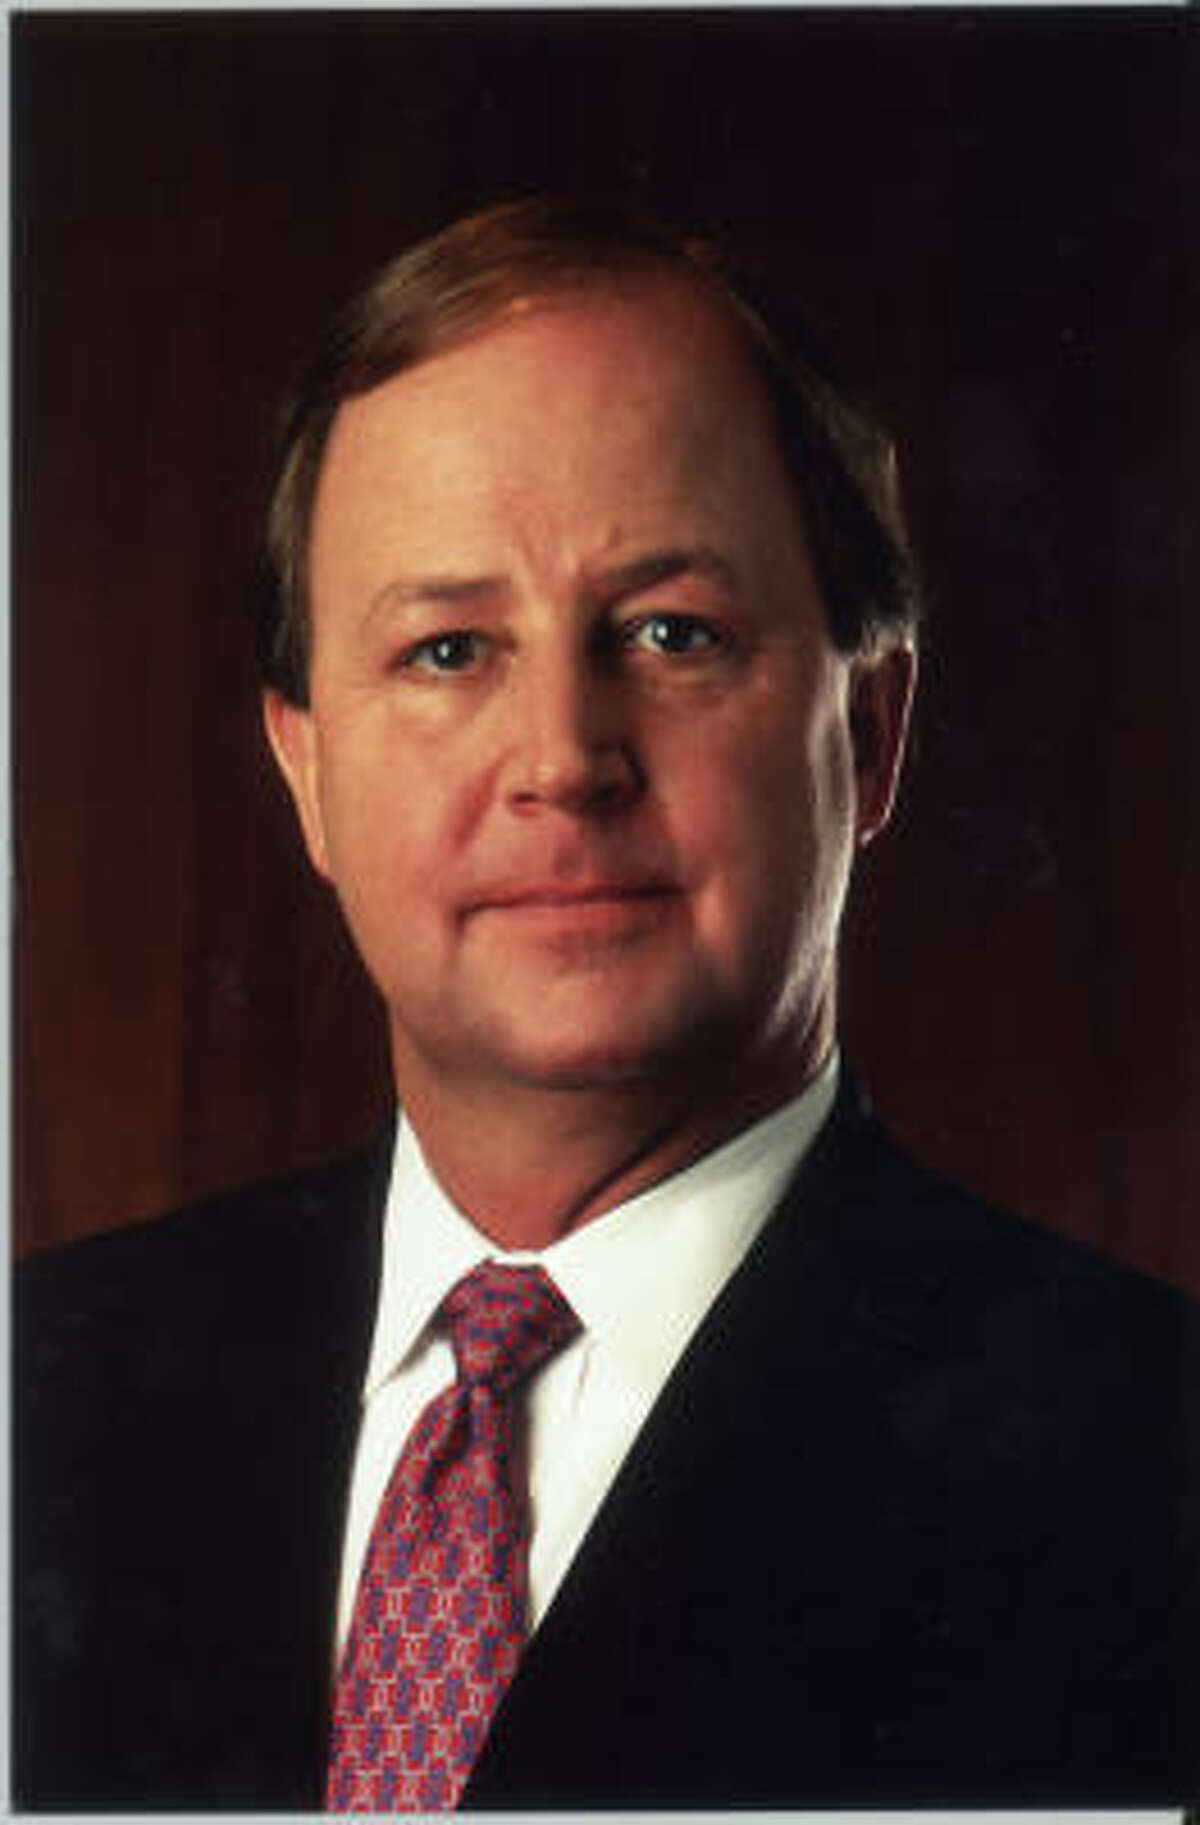 William 'Bill' Flores